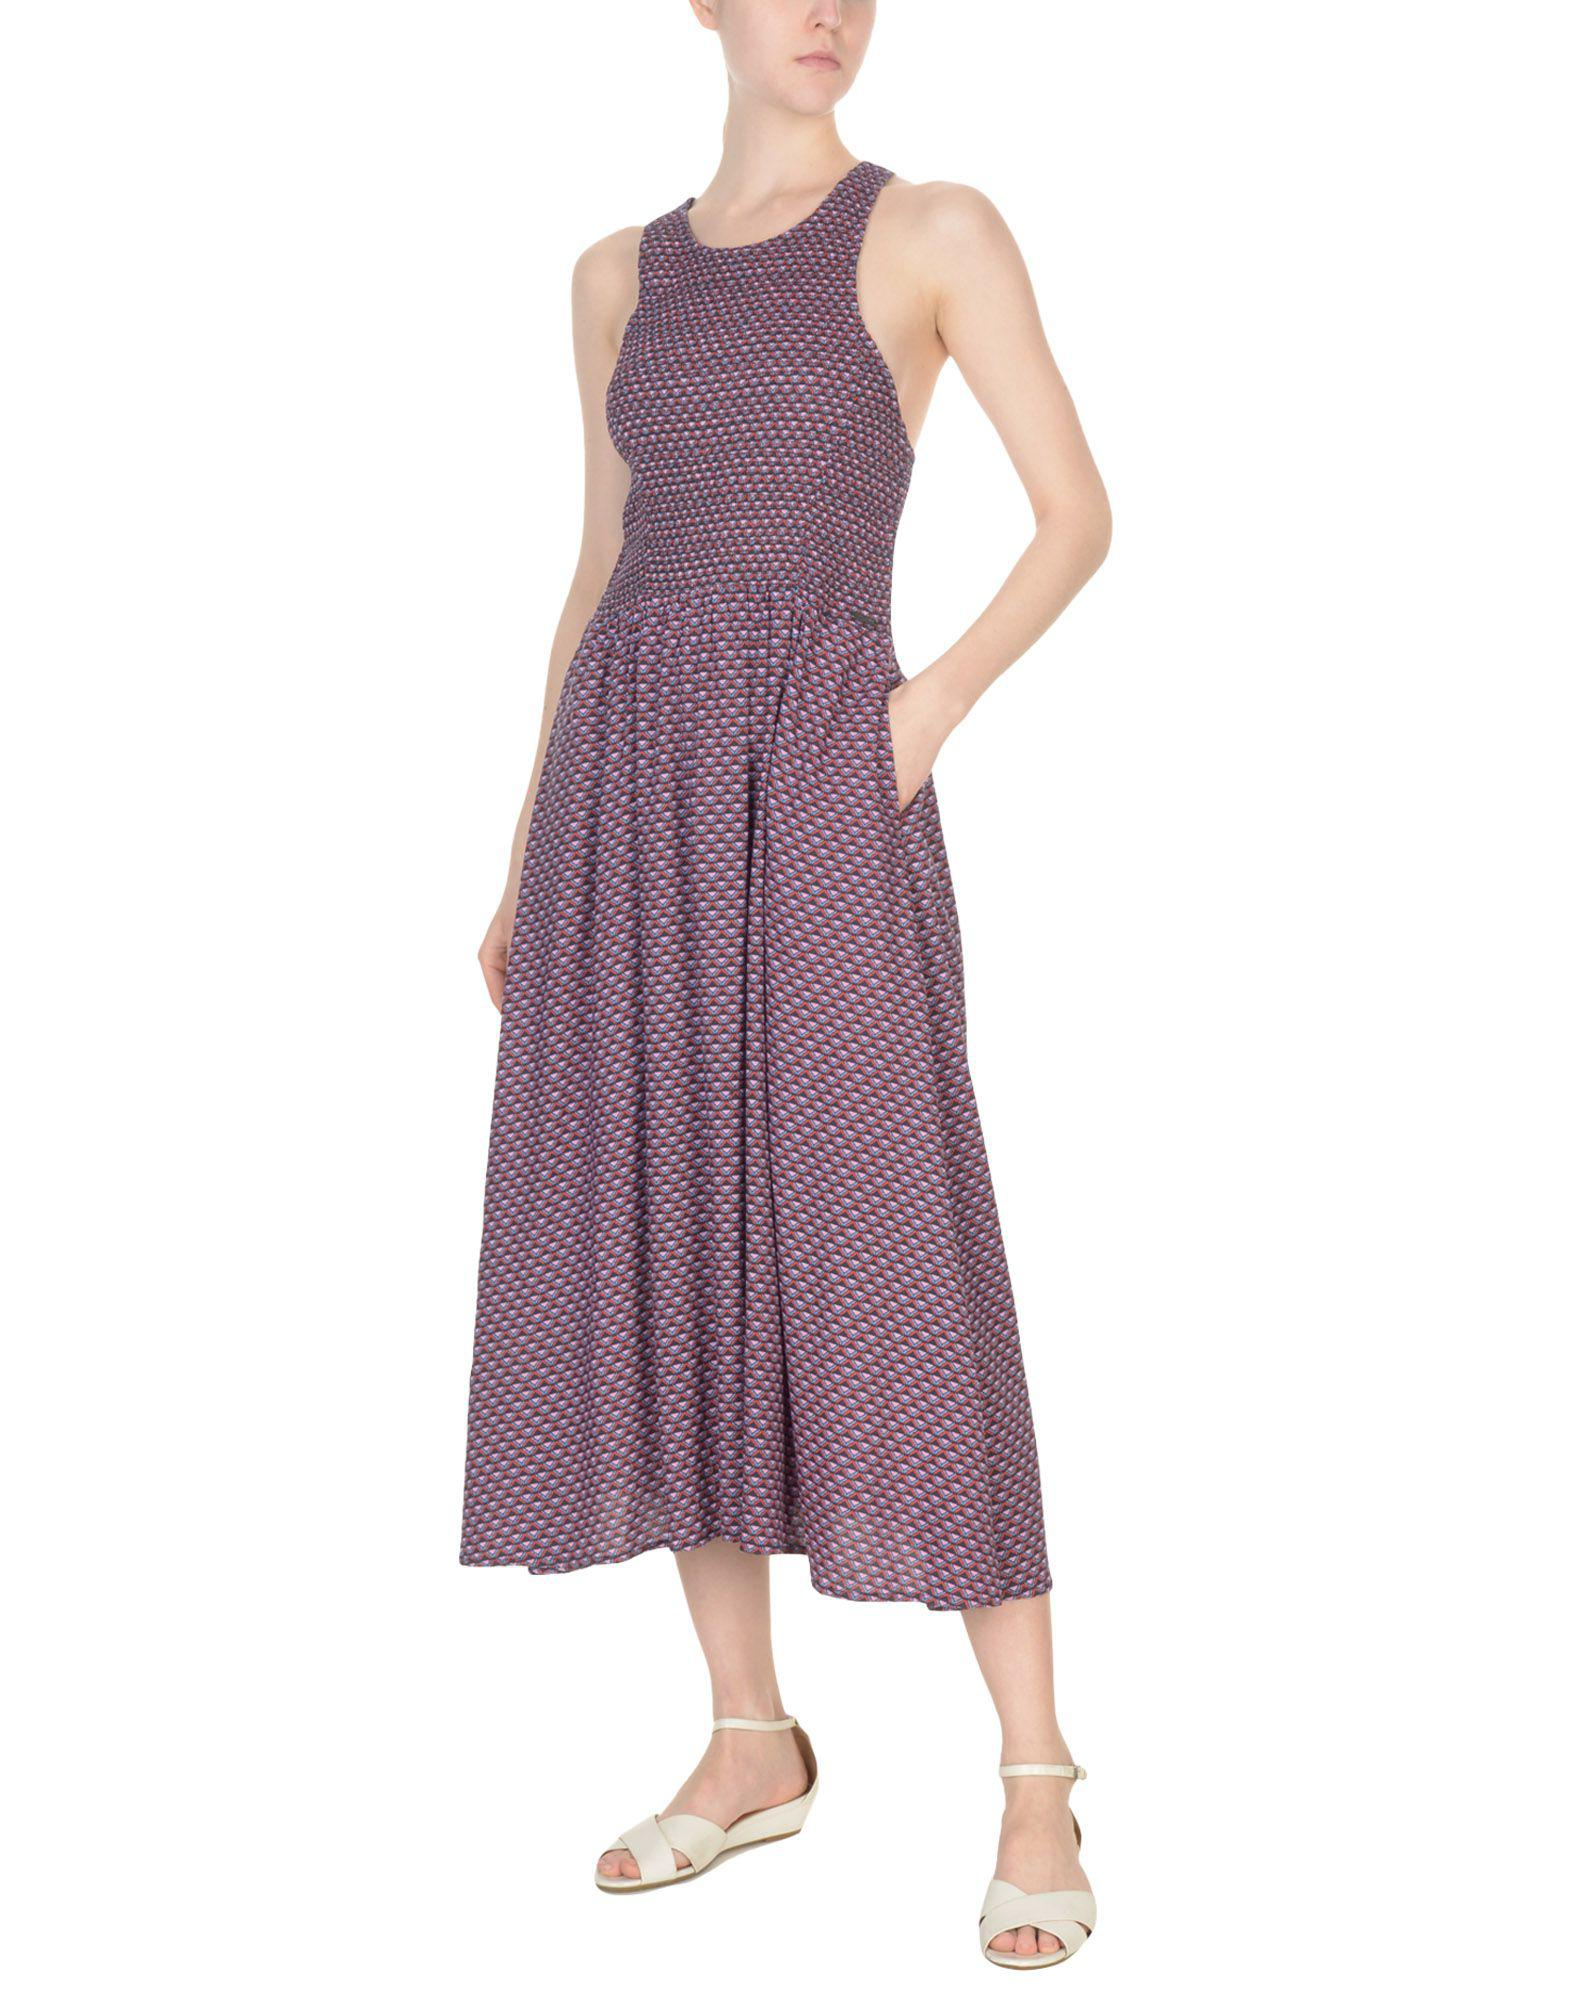 Pepe Jeans Synthetic 3/4 Length Dress in Pink